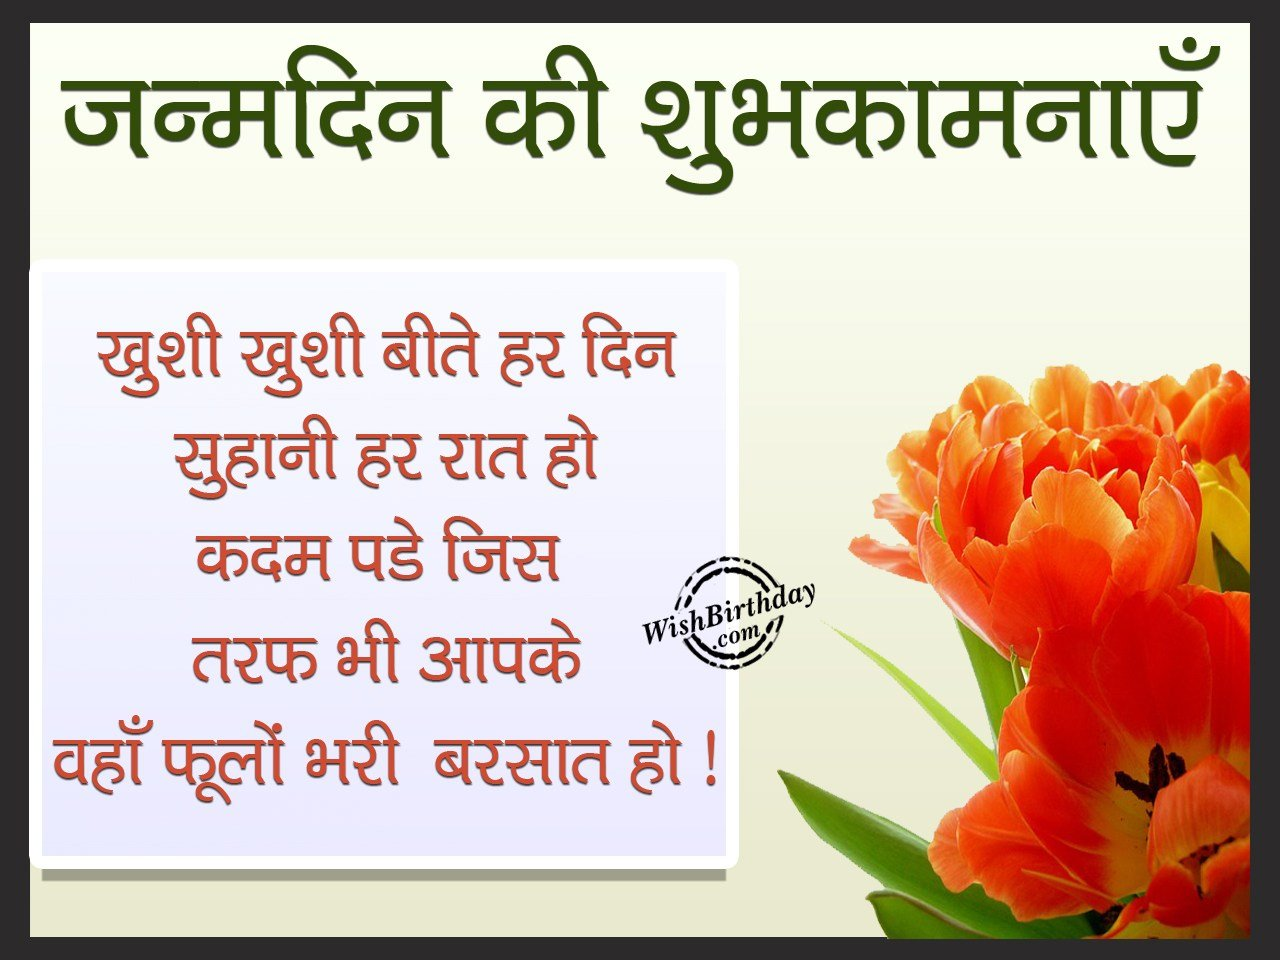 Birthday wishes in hindi birthday images pictures send this picture in e mail m4hsunfo